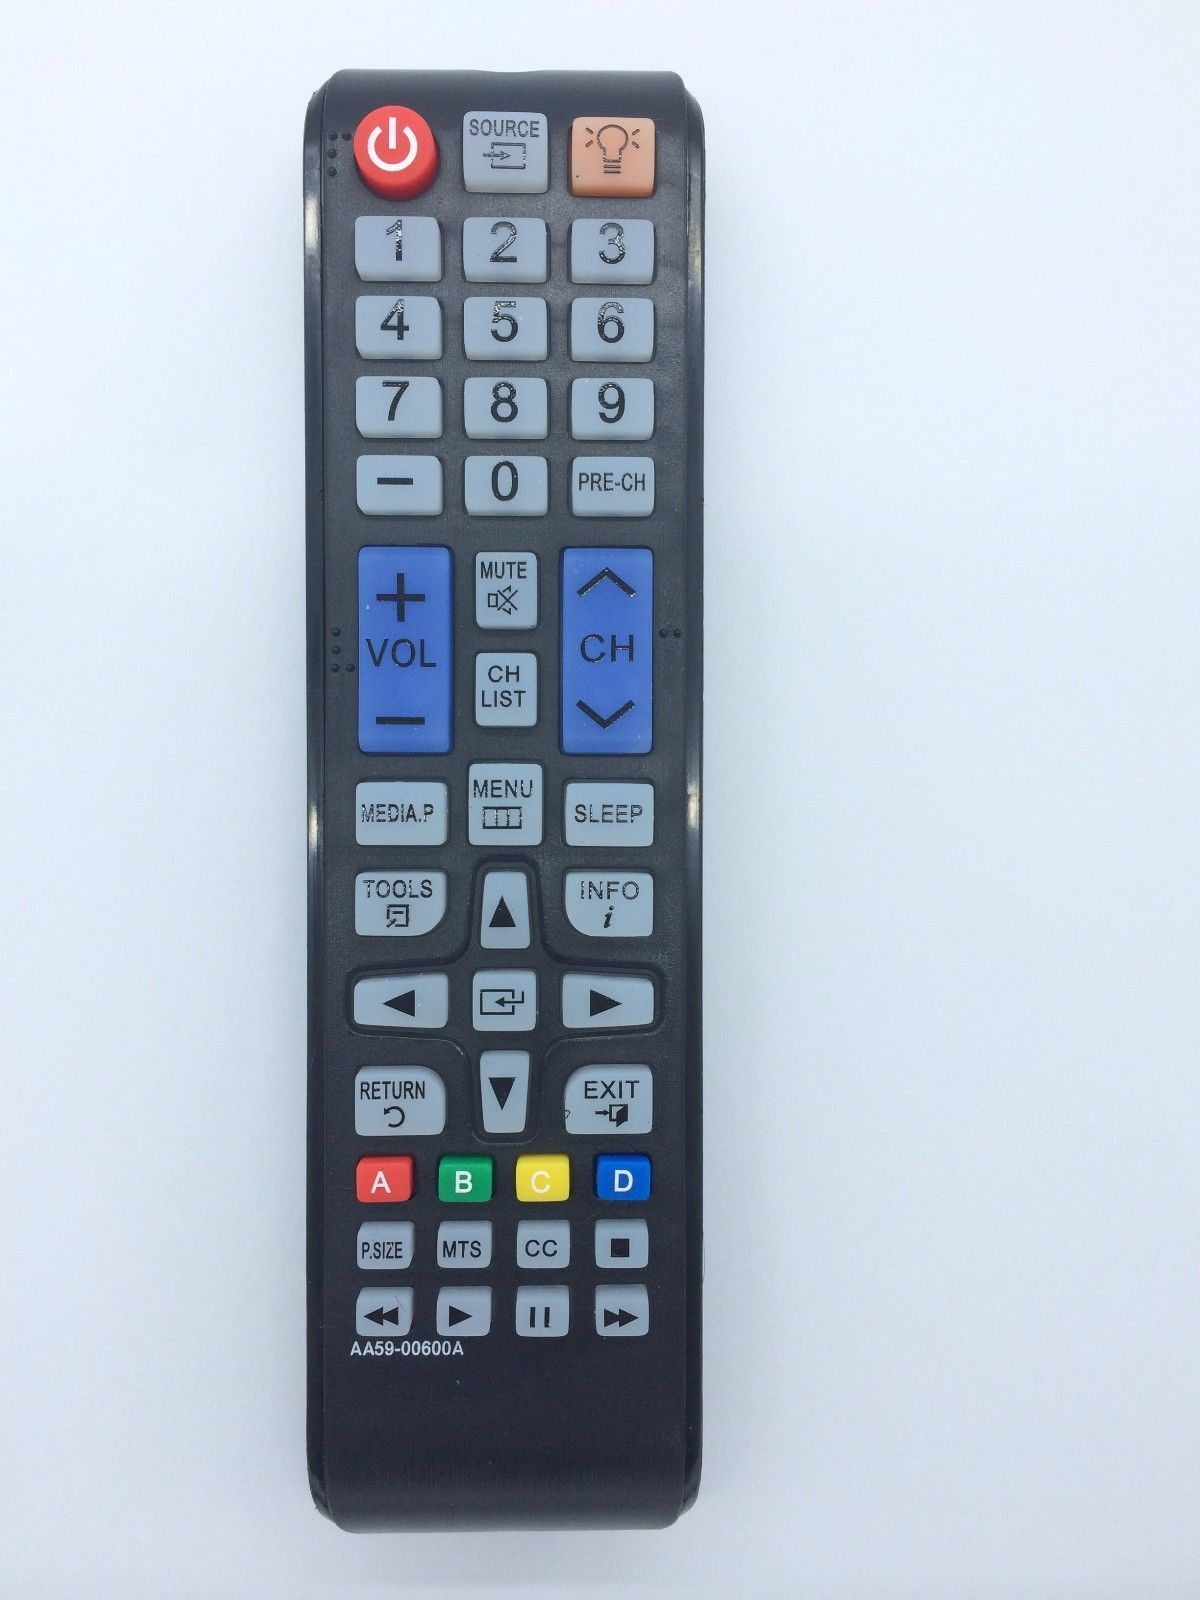 AA59-00600A REMOTE Control for Samsung Smart TV LCD LED Plasma Television